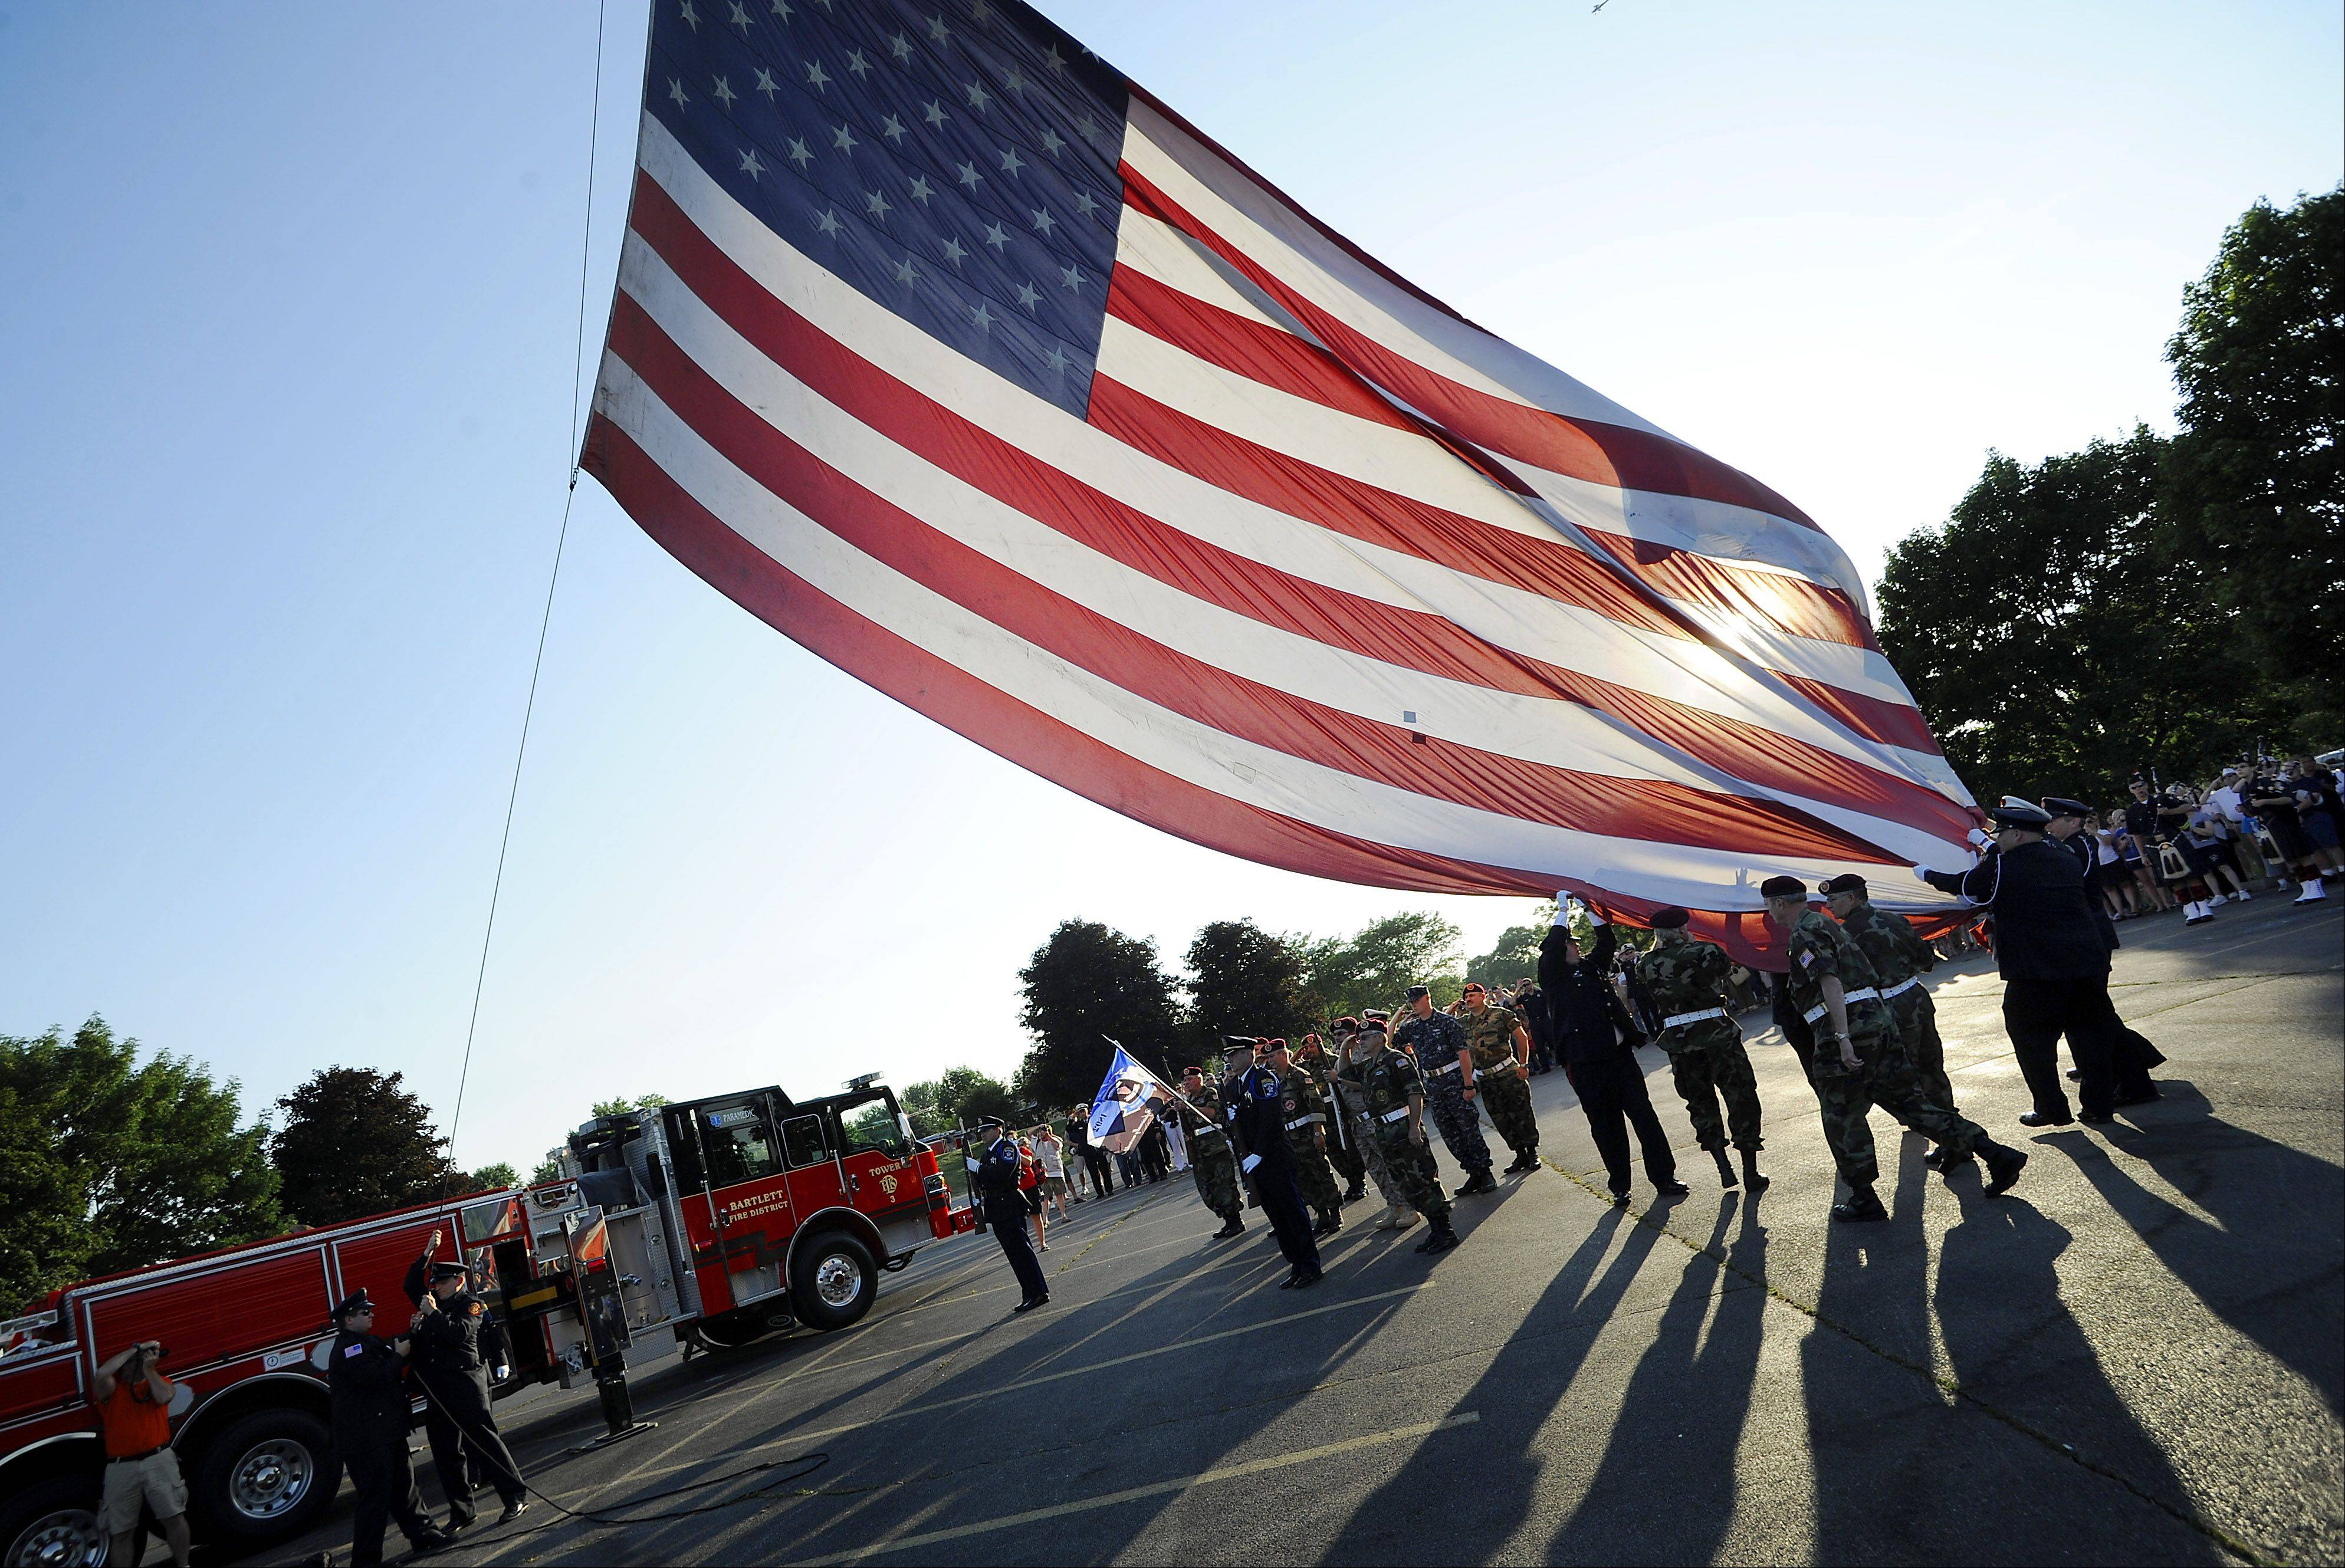 Members of the Bartlett Fire Department hoist the 75lb flag up their fire truck's tower getting ready to display old glory in all her splendor honoring September 11th emergency workers.